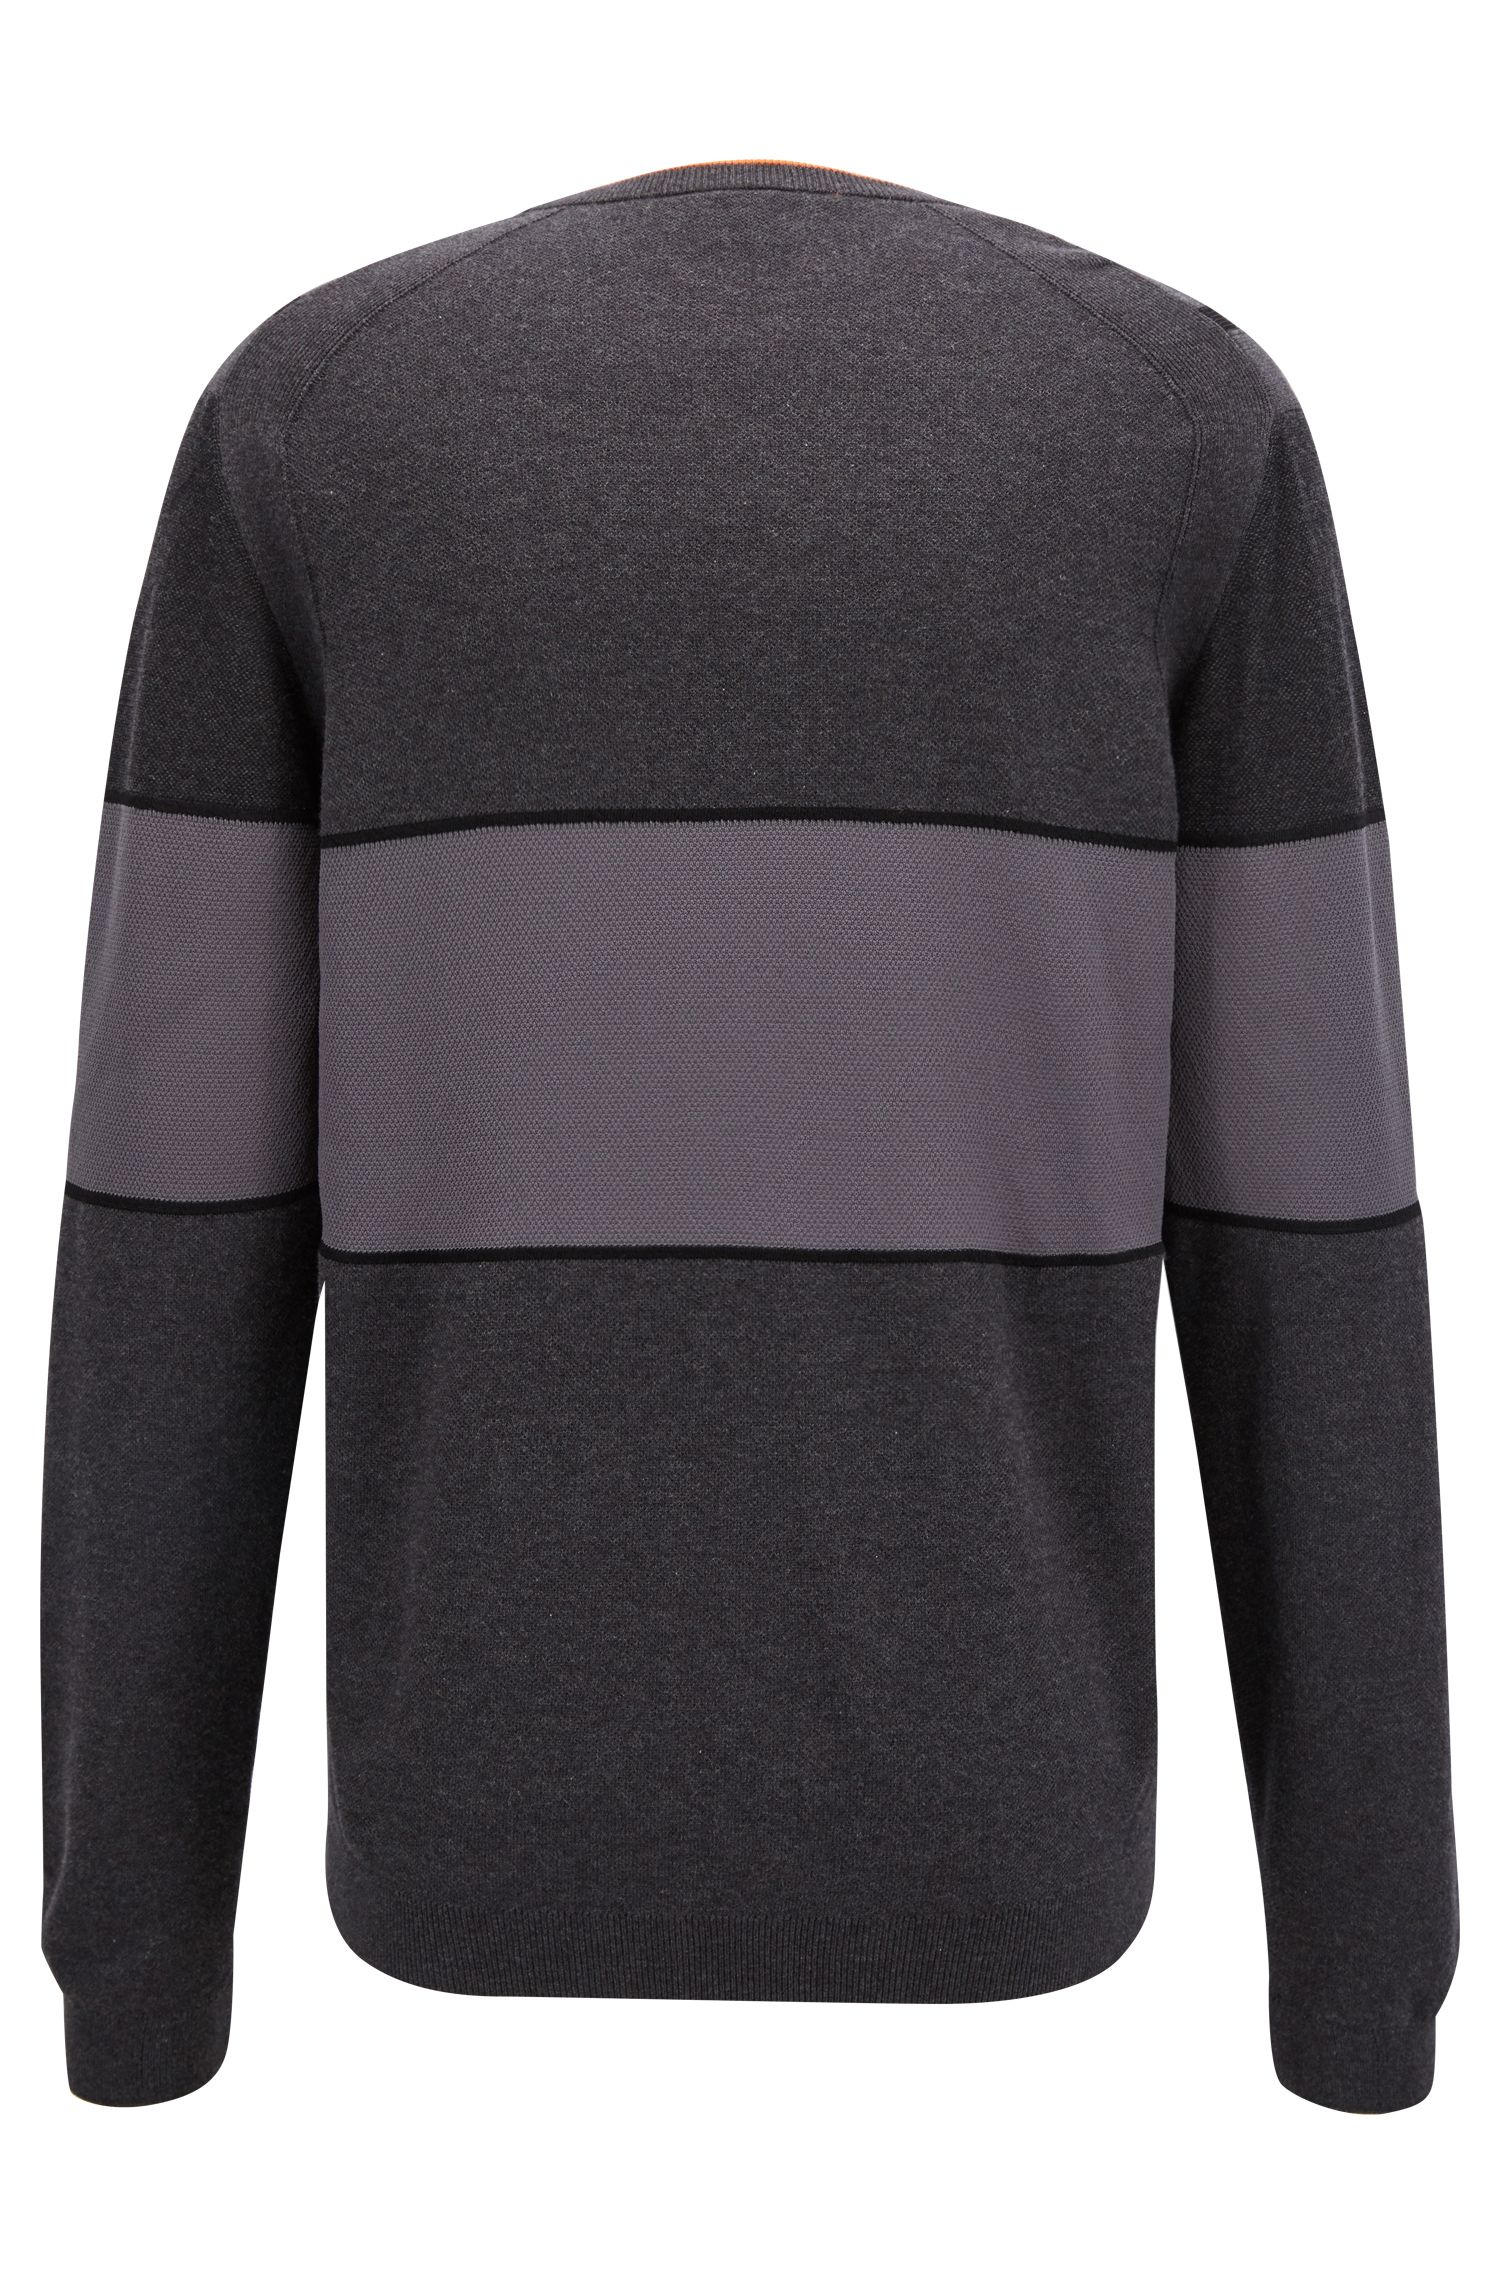 Cotton-blend sweater with color-blocking